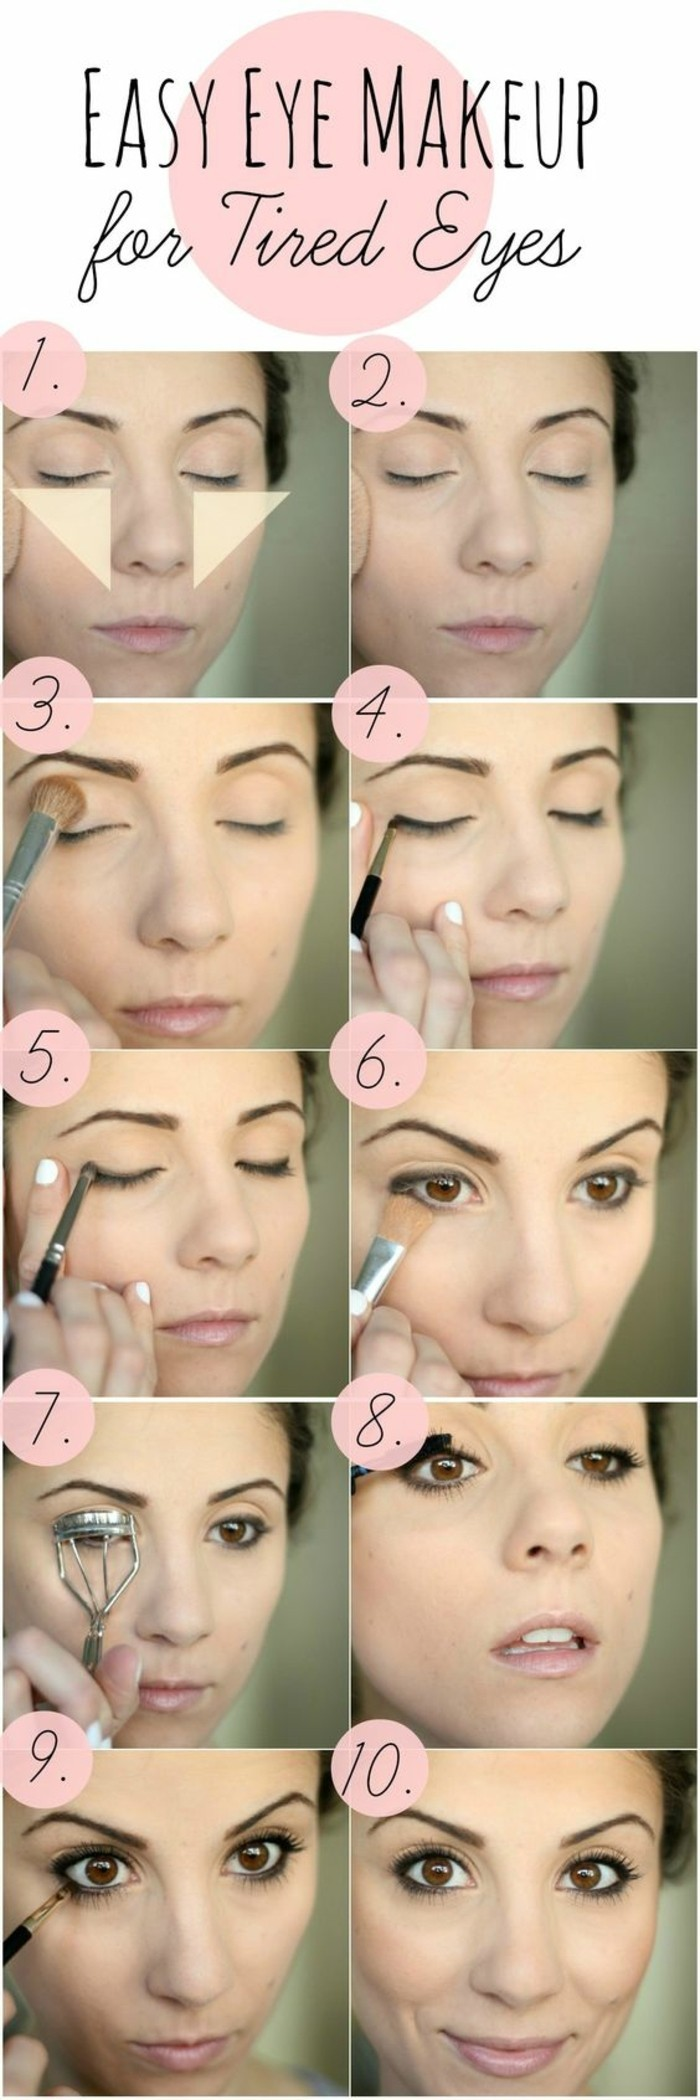 000-tuto-maquillage-yeux-marrons-nos-idees-pour-un-maquillage-chic-maquillage-année-60